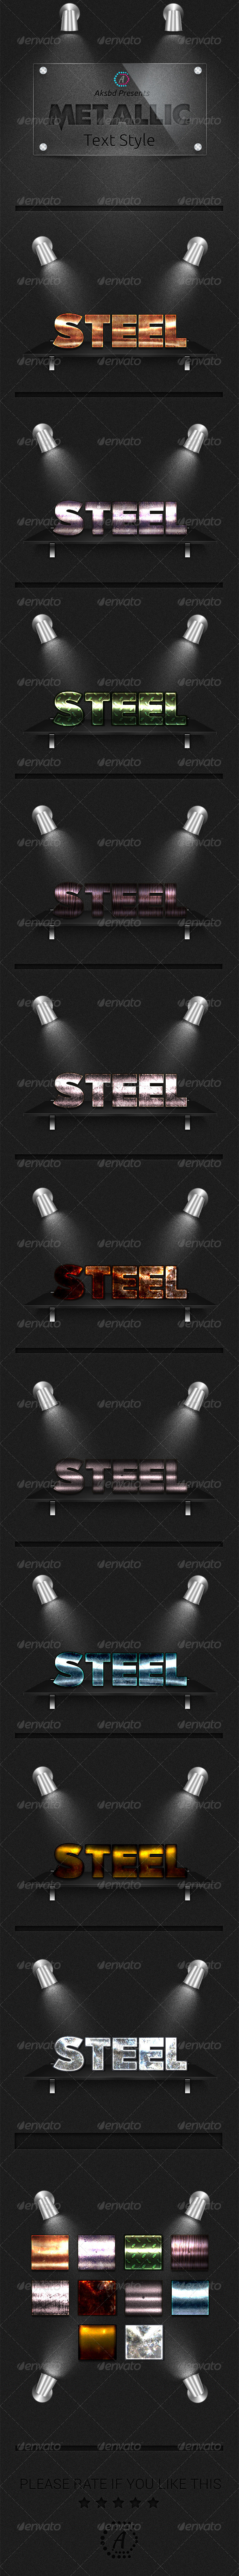 GraphicRiver Metallic Text Styles 10 UHD Styles 8135529